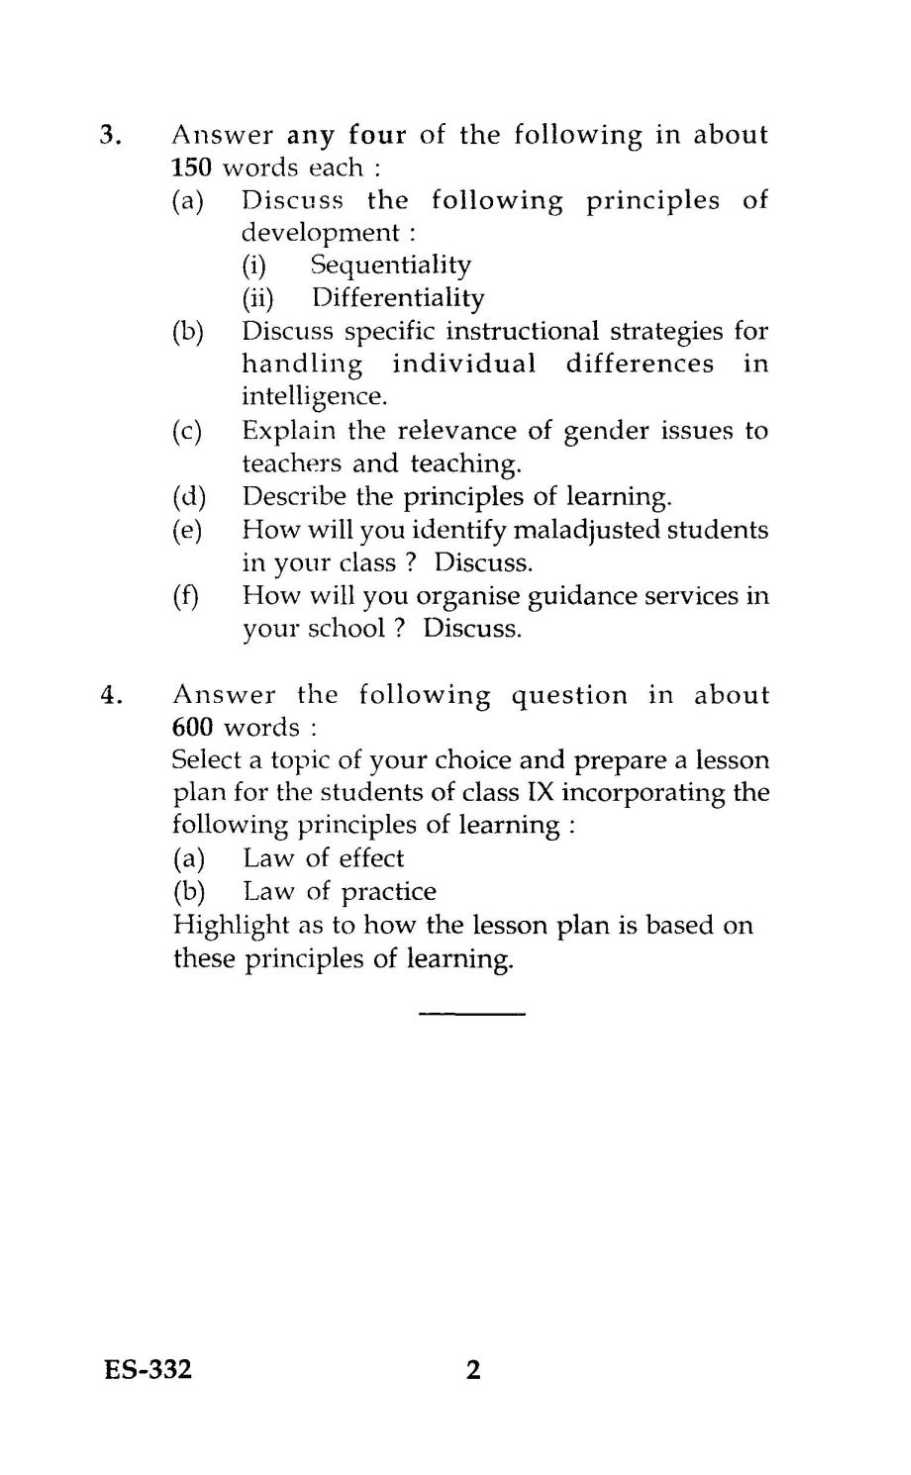 developmental psychology essay exam questions Section a – approaches in psychology: q3 [16 marks]  is an enduring model of  psychological development: the most basic needs are biological  merely reflect  my attempt at producing a model answer on the day of the exam  cognitive  approach comparison essay: example answer video (16 marks.